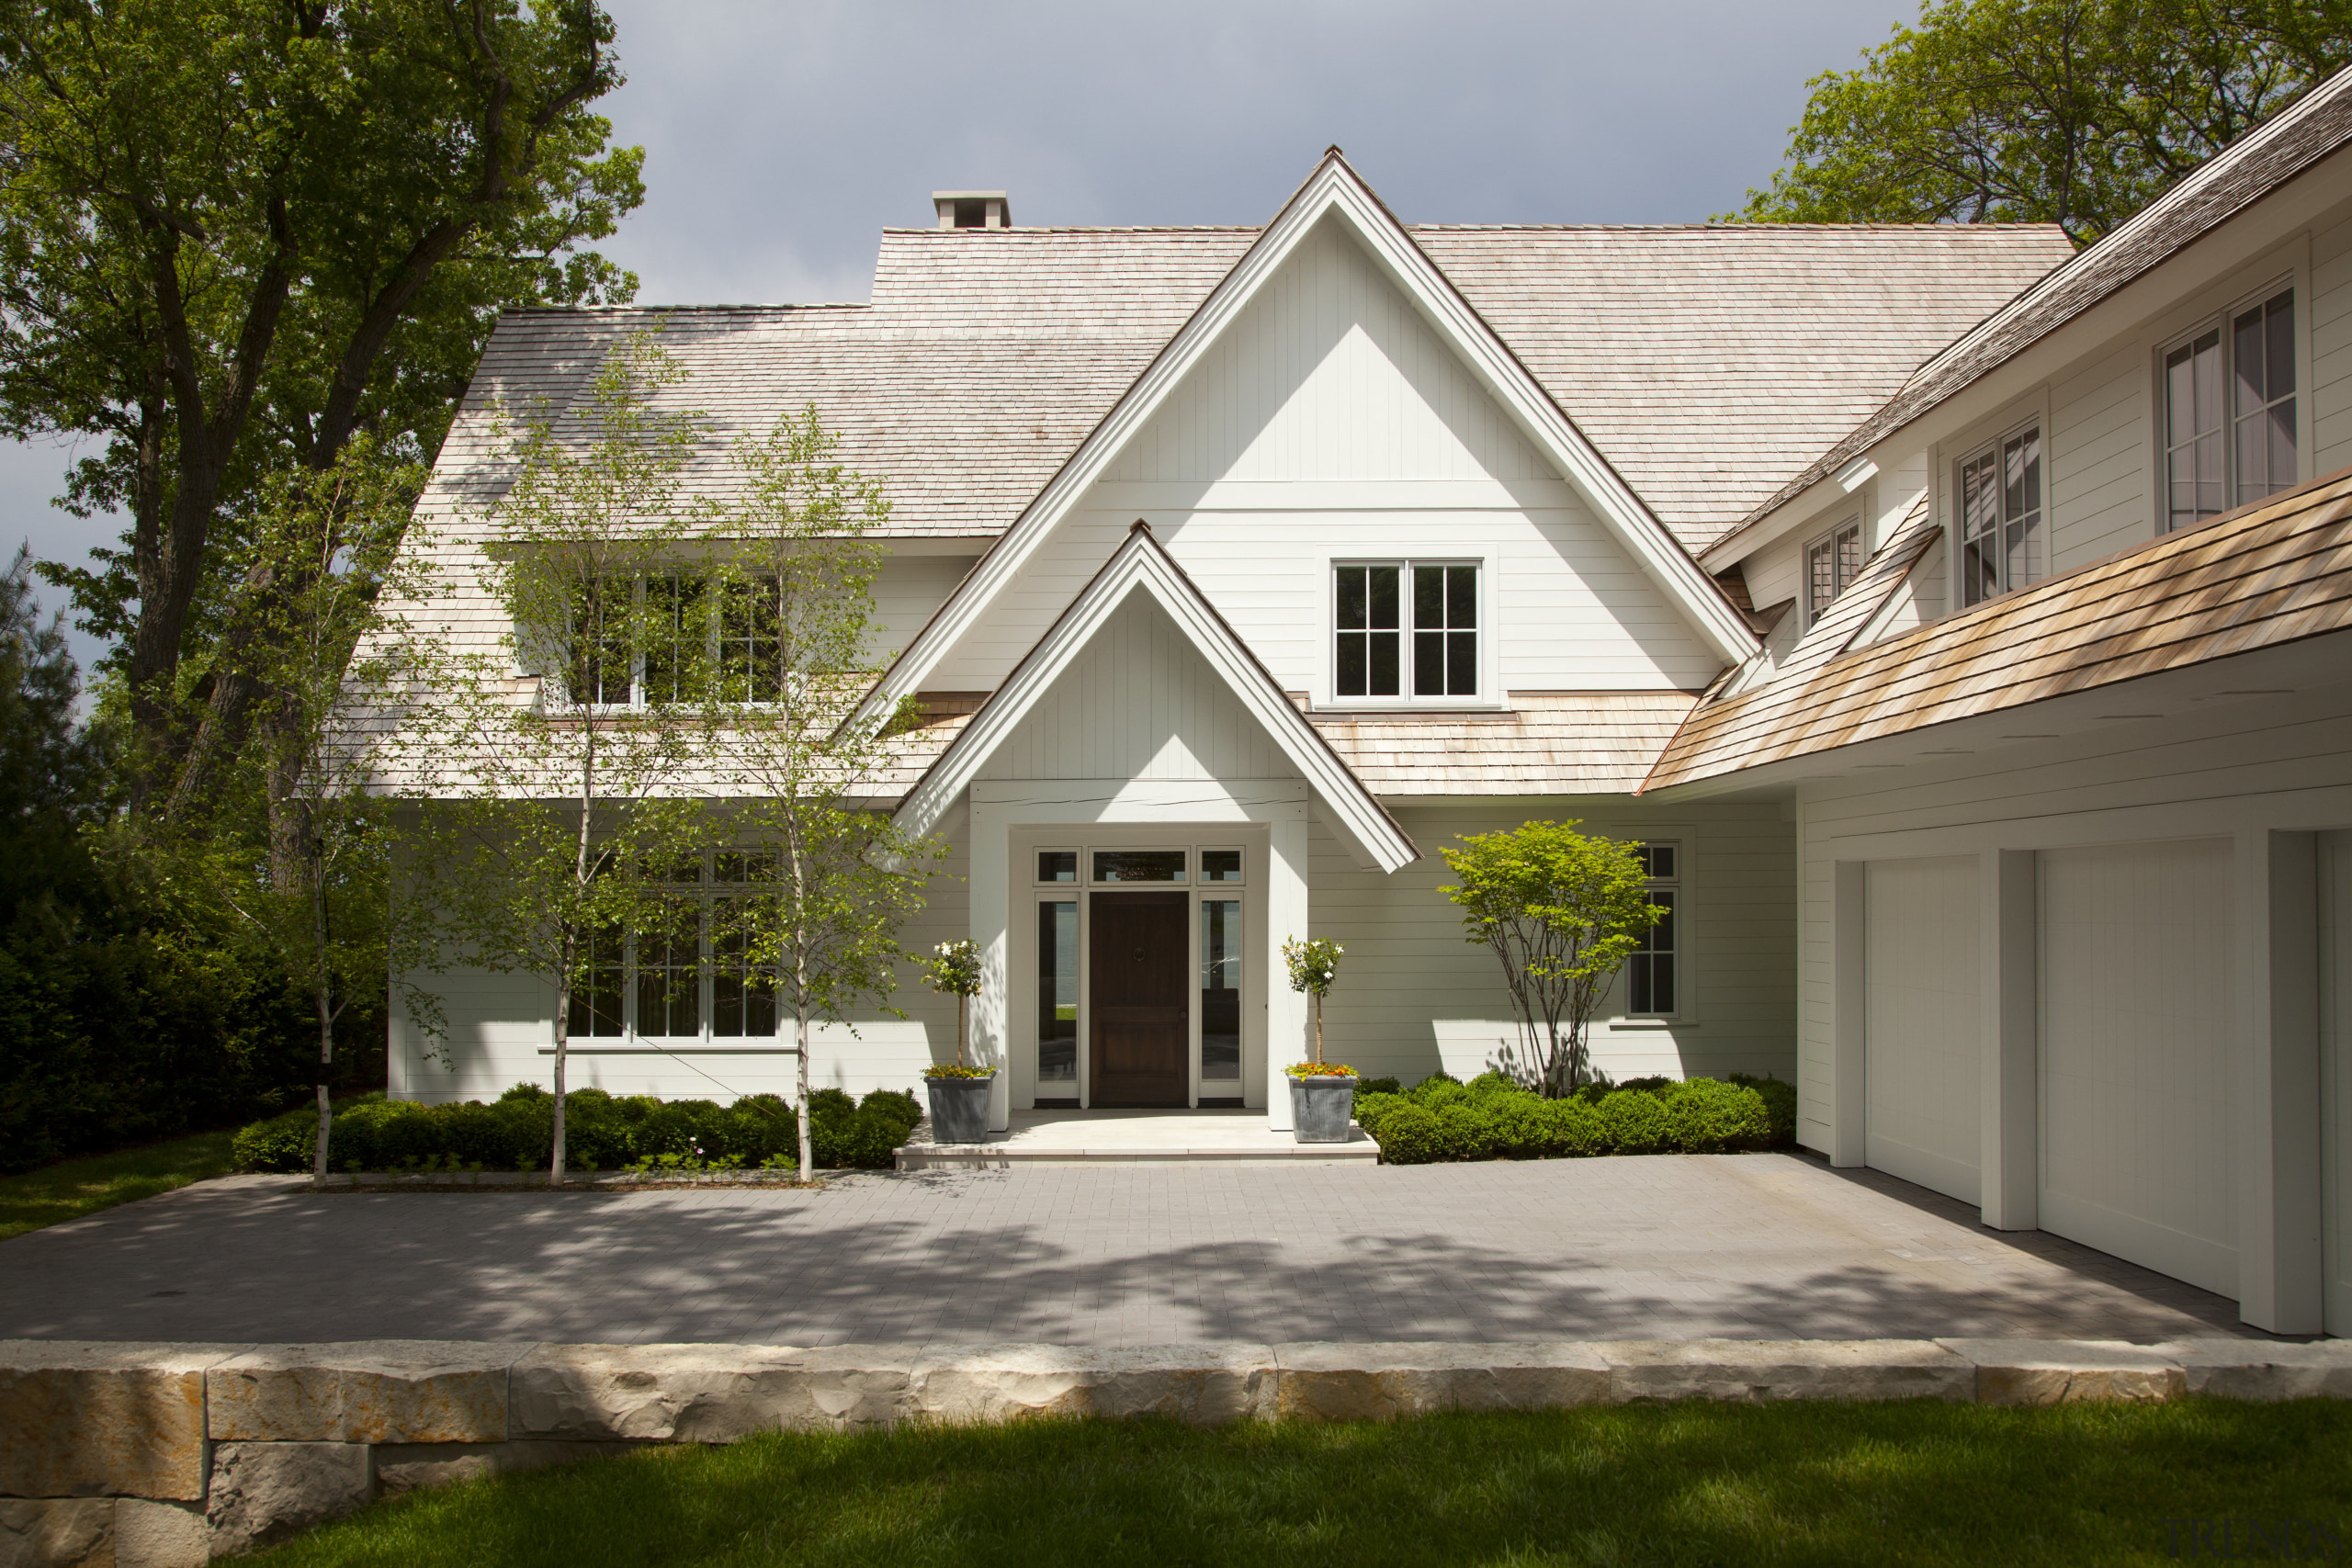 Traditional style new home - Traditional style new cottage, elevation, estate, facade, farmhouse, home, house, property, real estate, residential area, roof, siding, window, brown